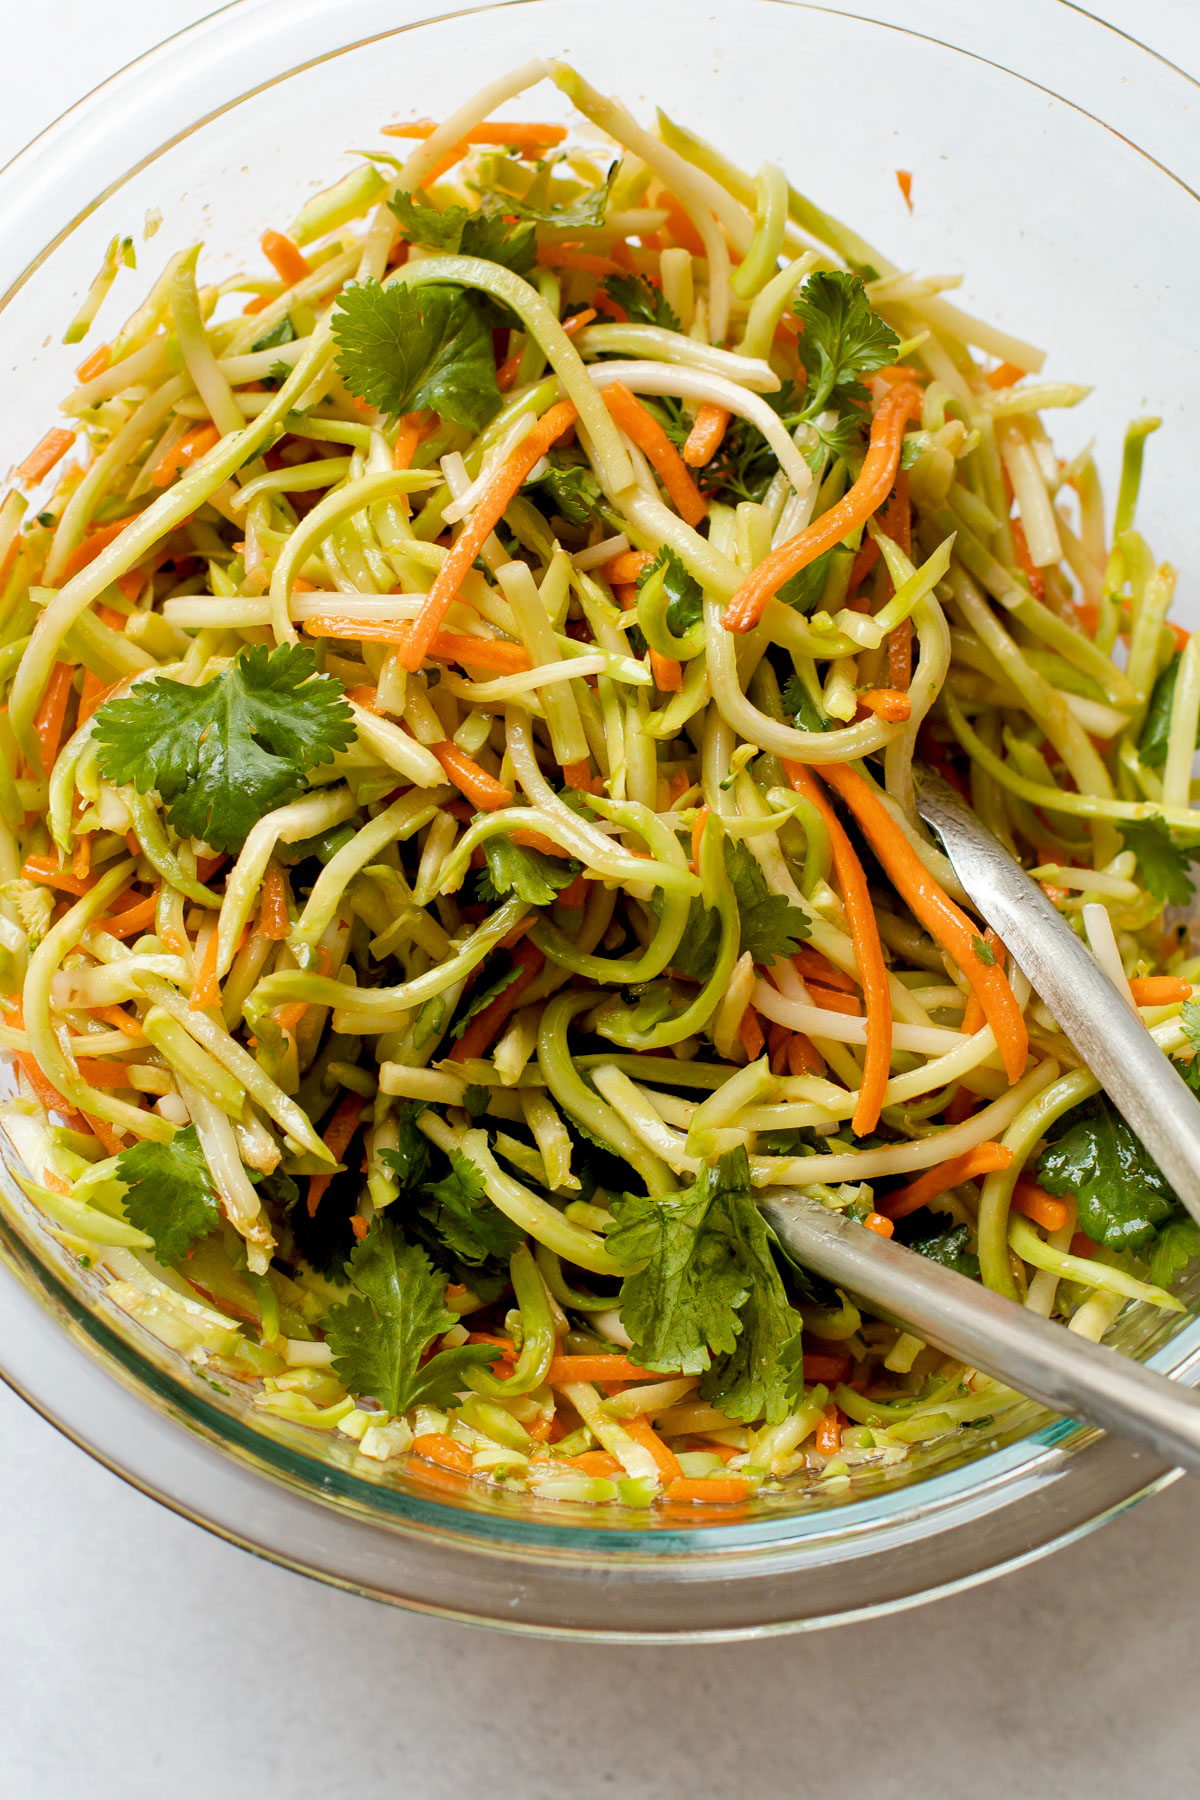 Easy broccoli slaw in a bowl for asian cabbage wraps.